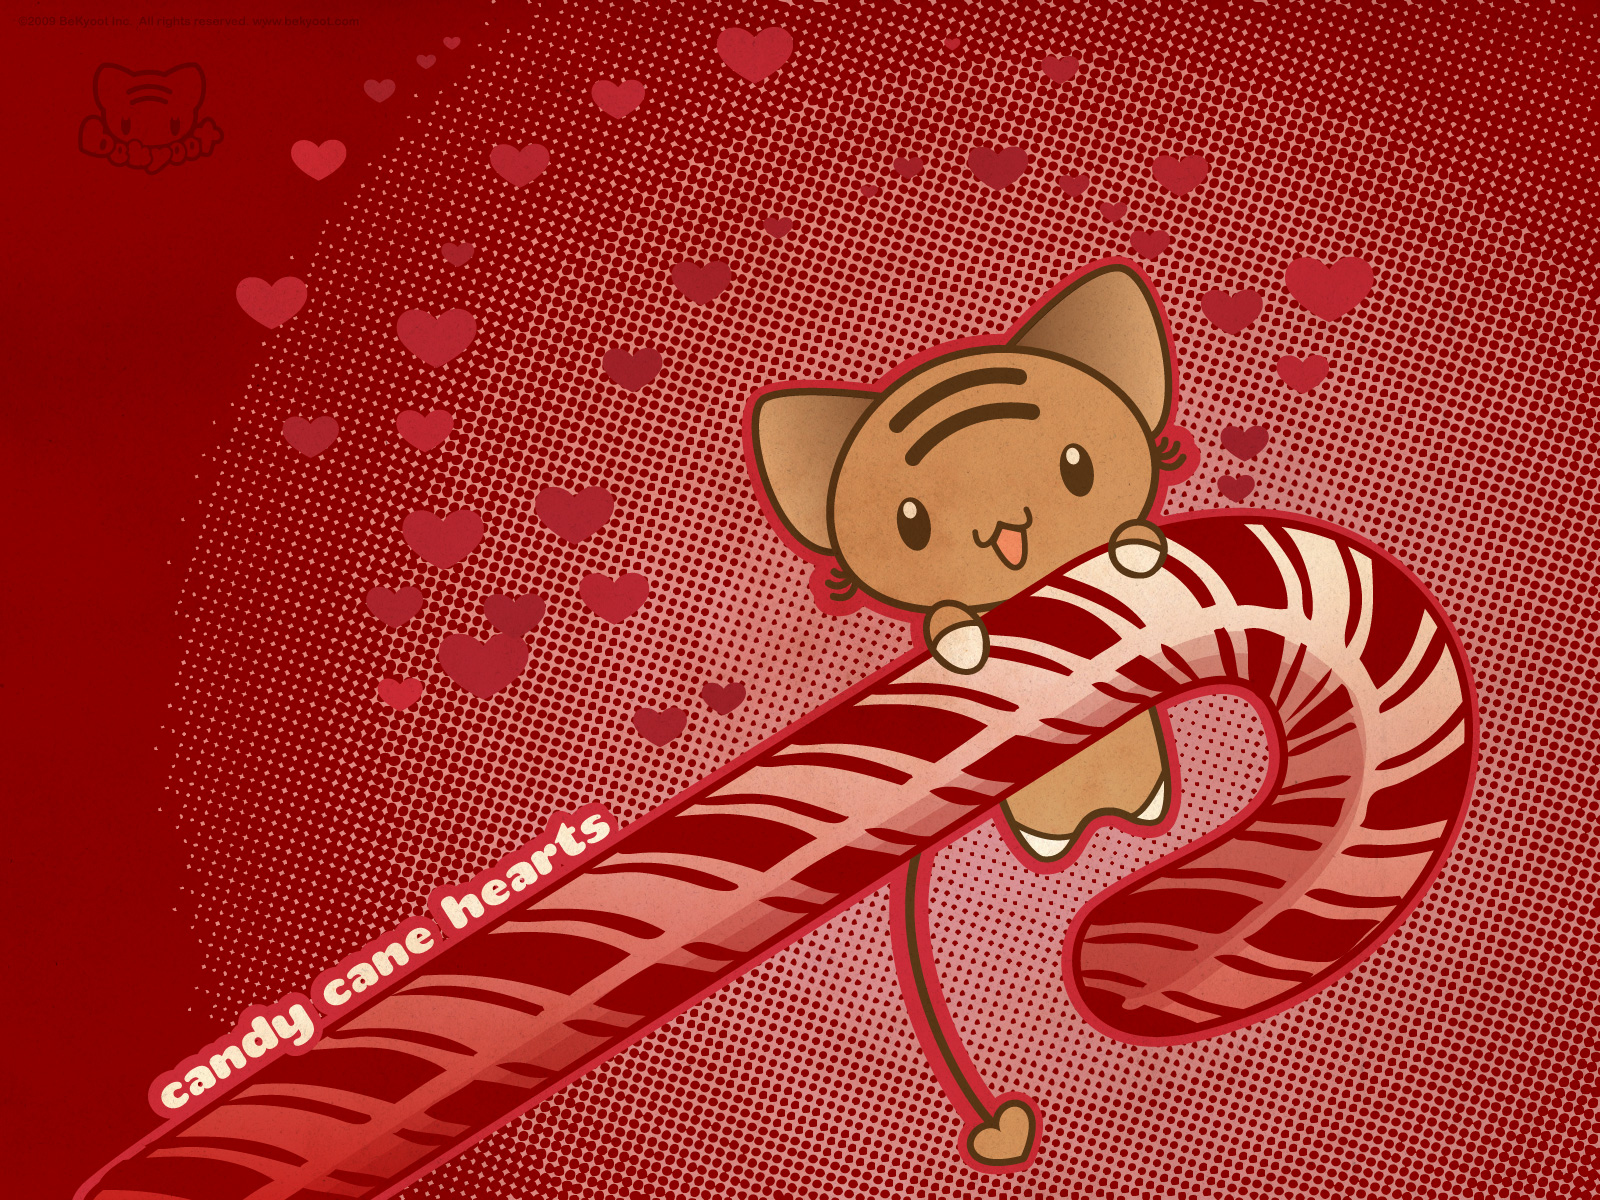 Candy Canes images candy cane cat HD wallpaper and 1600x1200